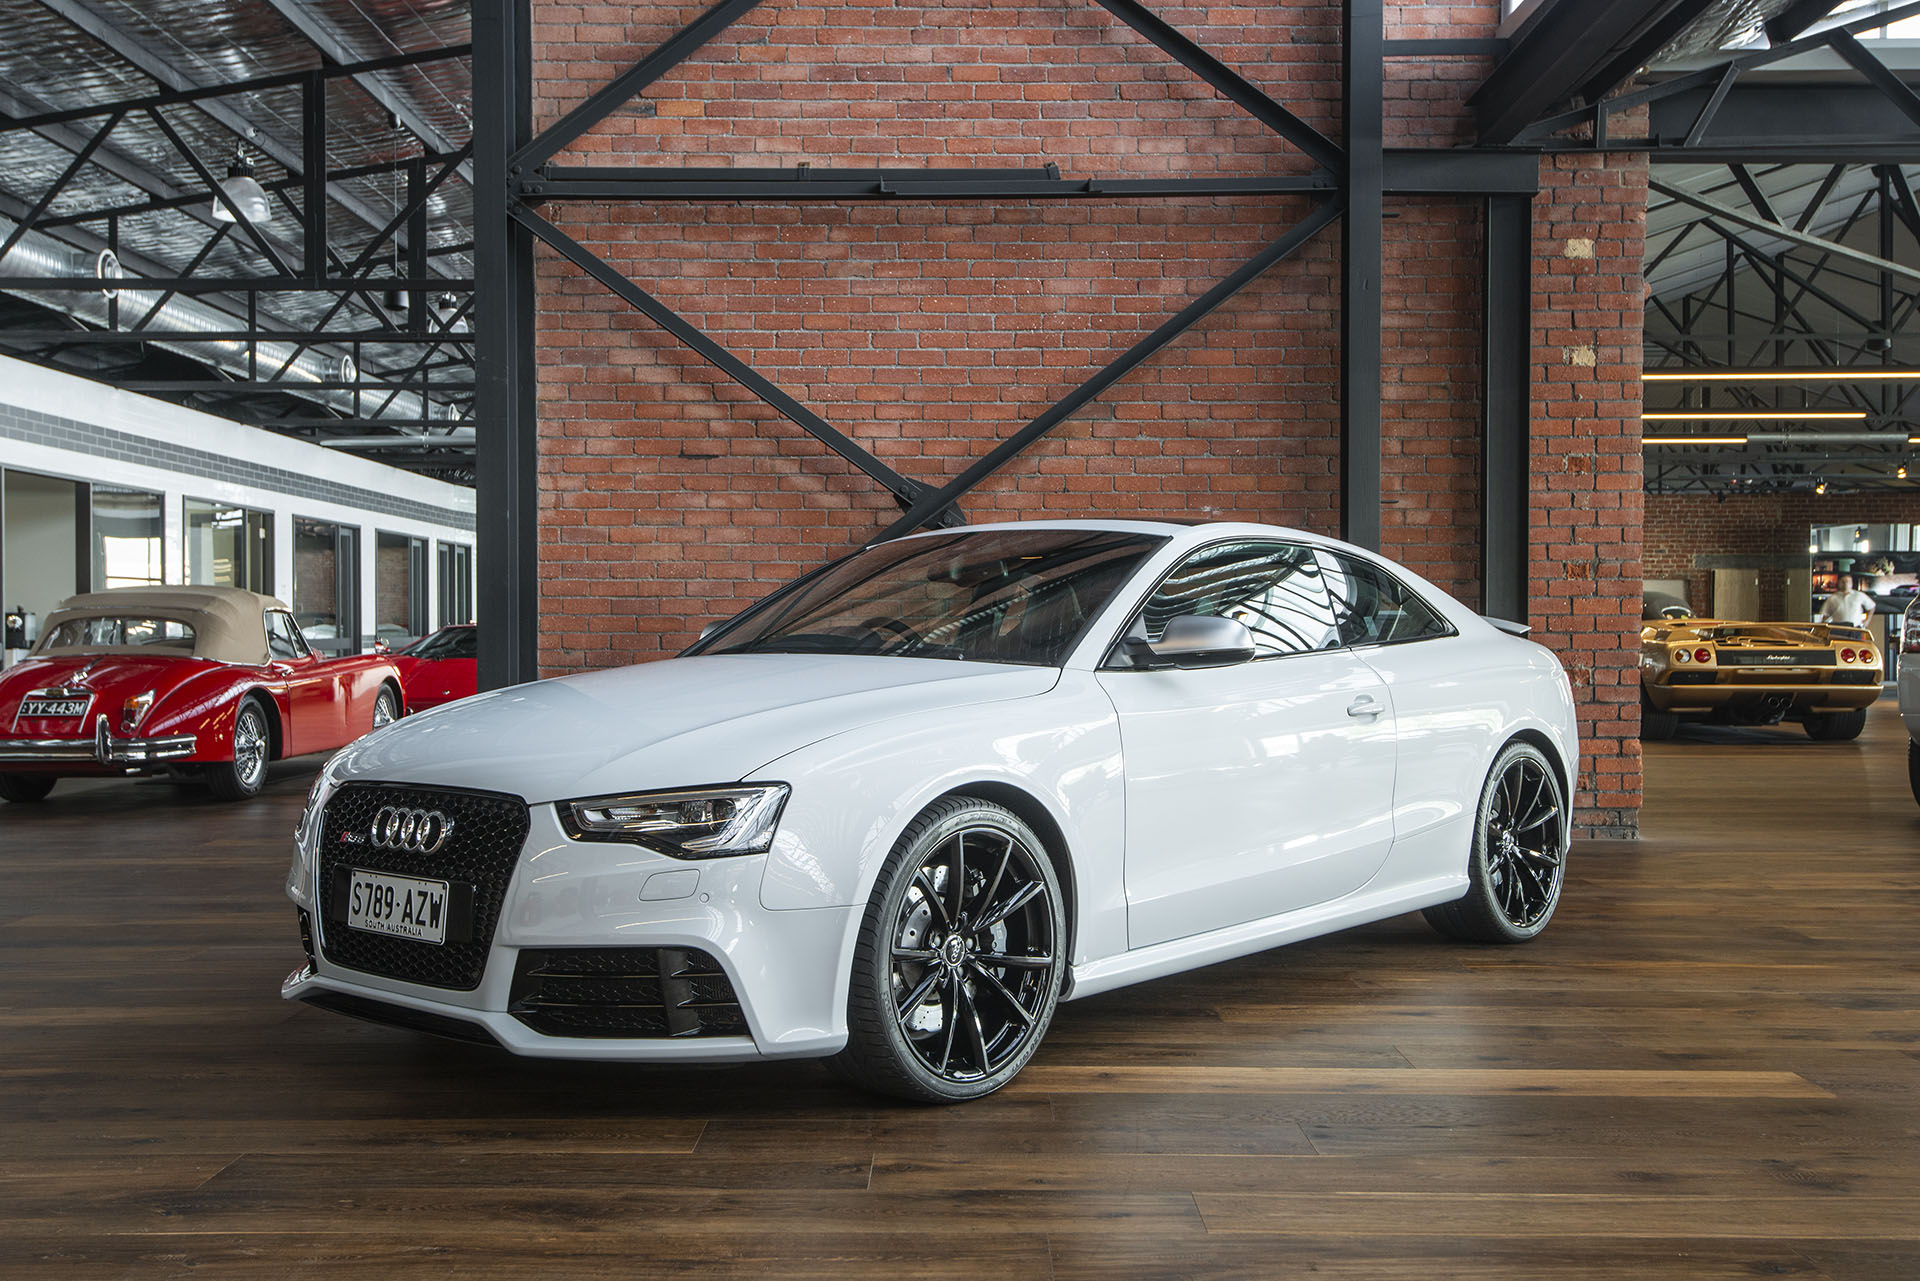 Audi Rs5 2018 >> 2013 Audi RS5 8T Coupe (MY14) - Richmonds - Classic and ...